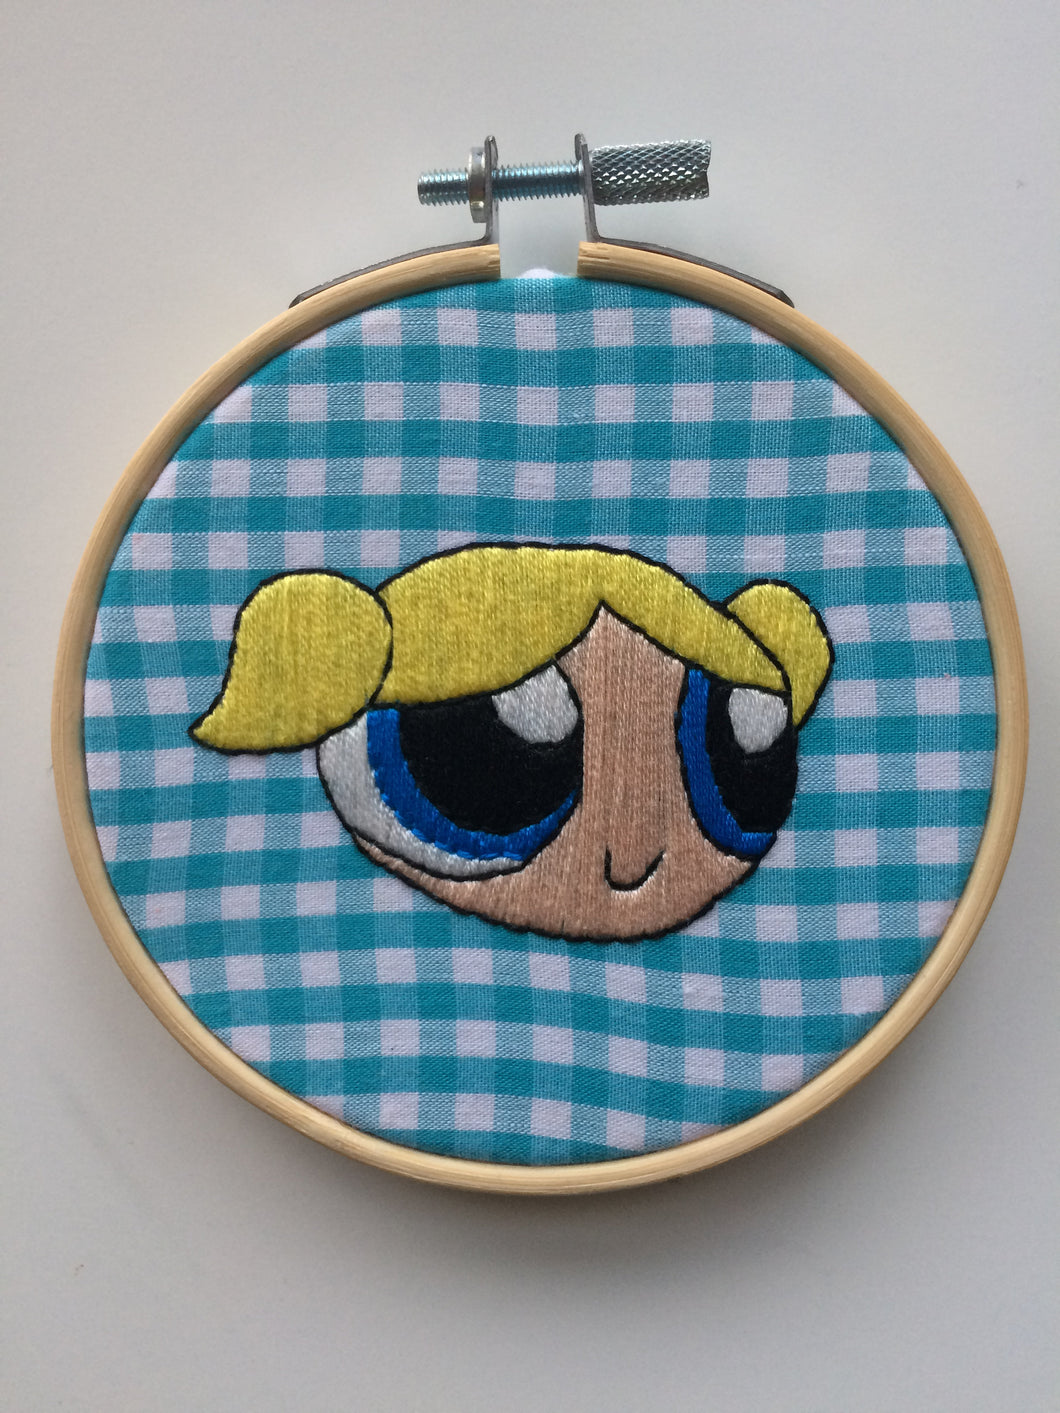 Bubbles Powerpuff Girl Hand Embroidery